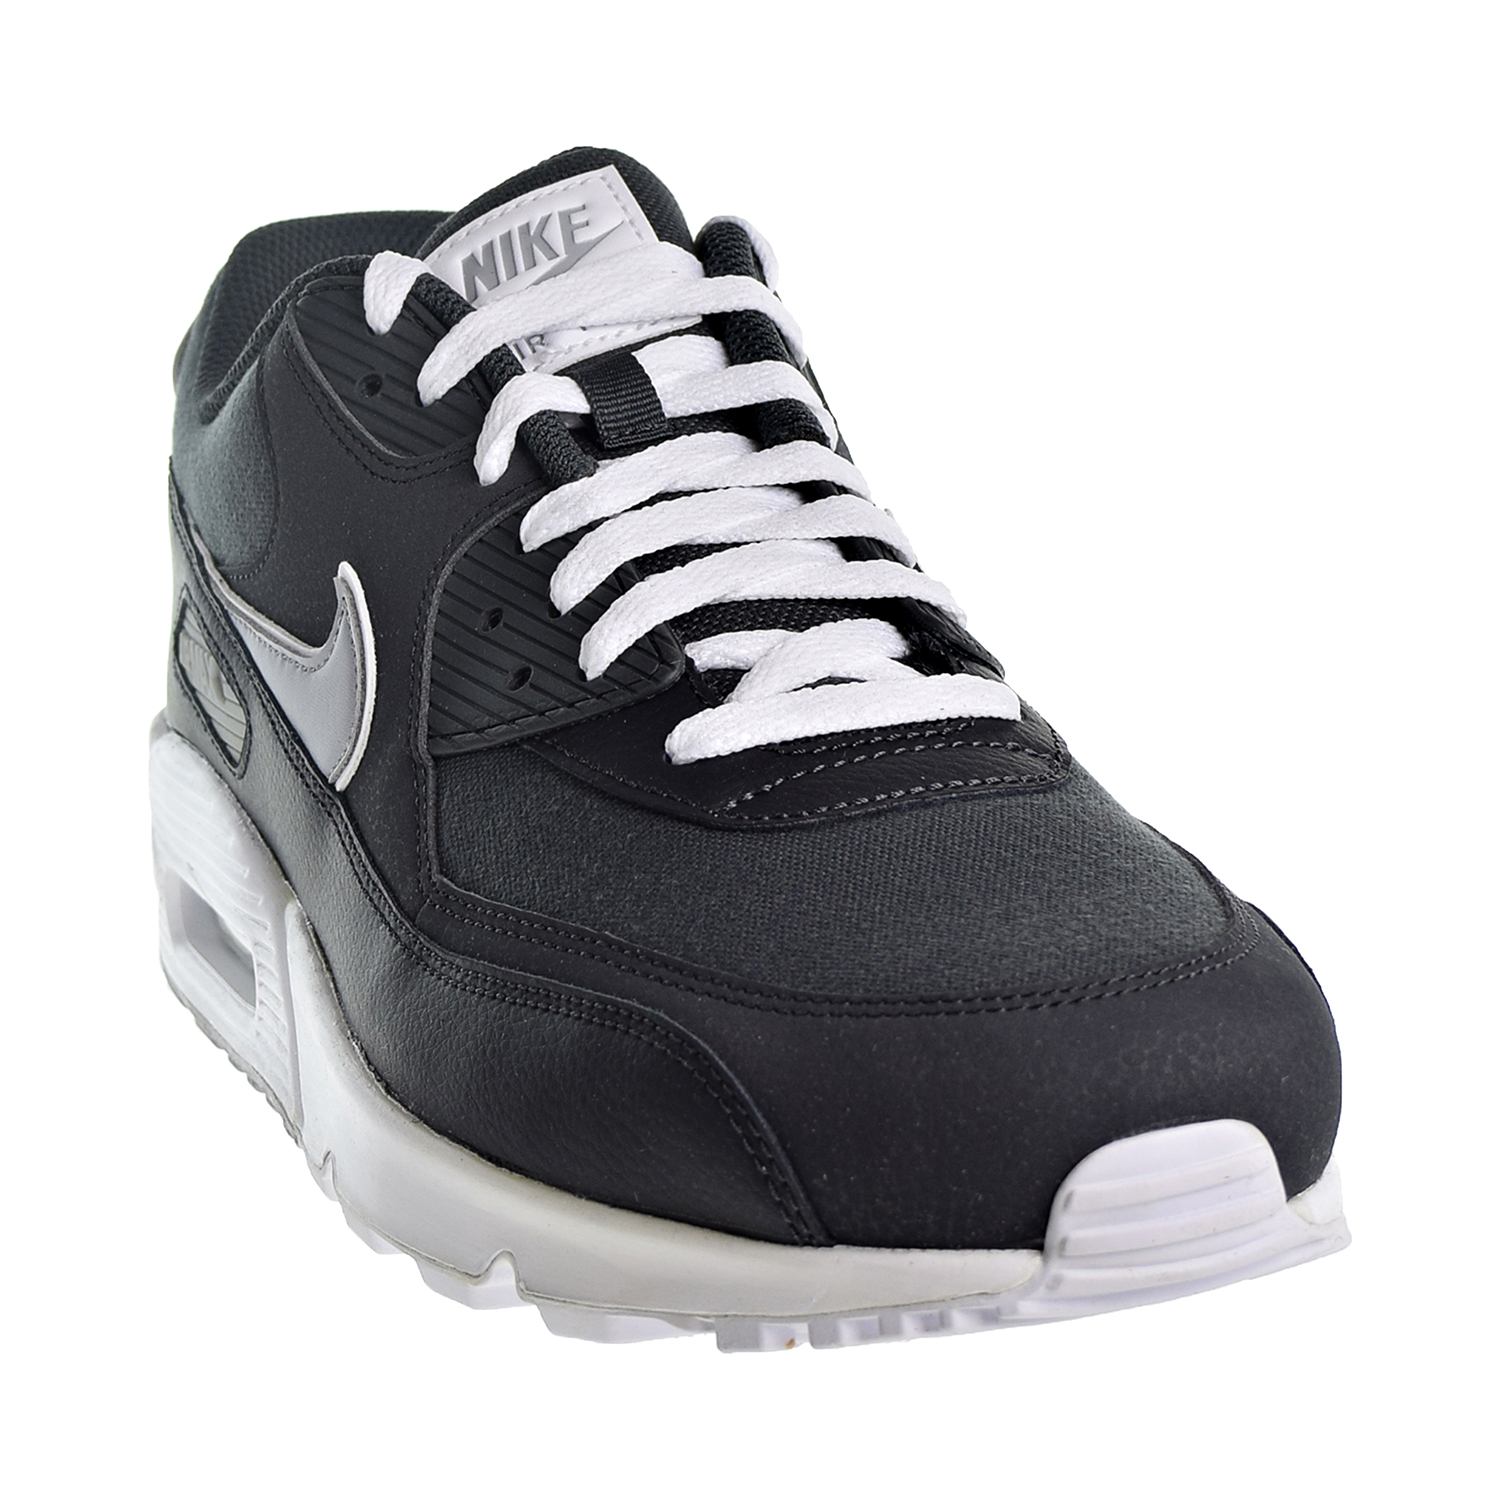 innovative design aefc6 51990 Nike Air Max 90 Essential Men s Shoes Anthracite Wolf Grey White aj1285-005